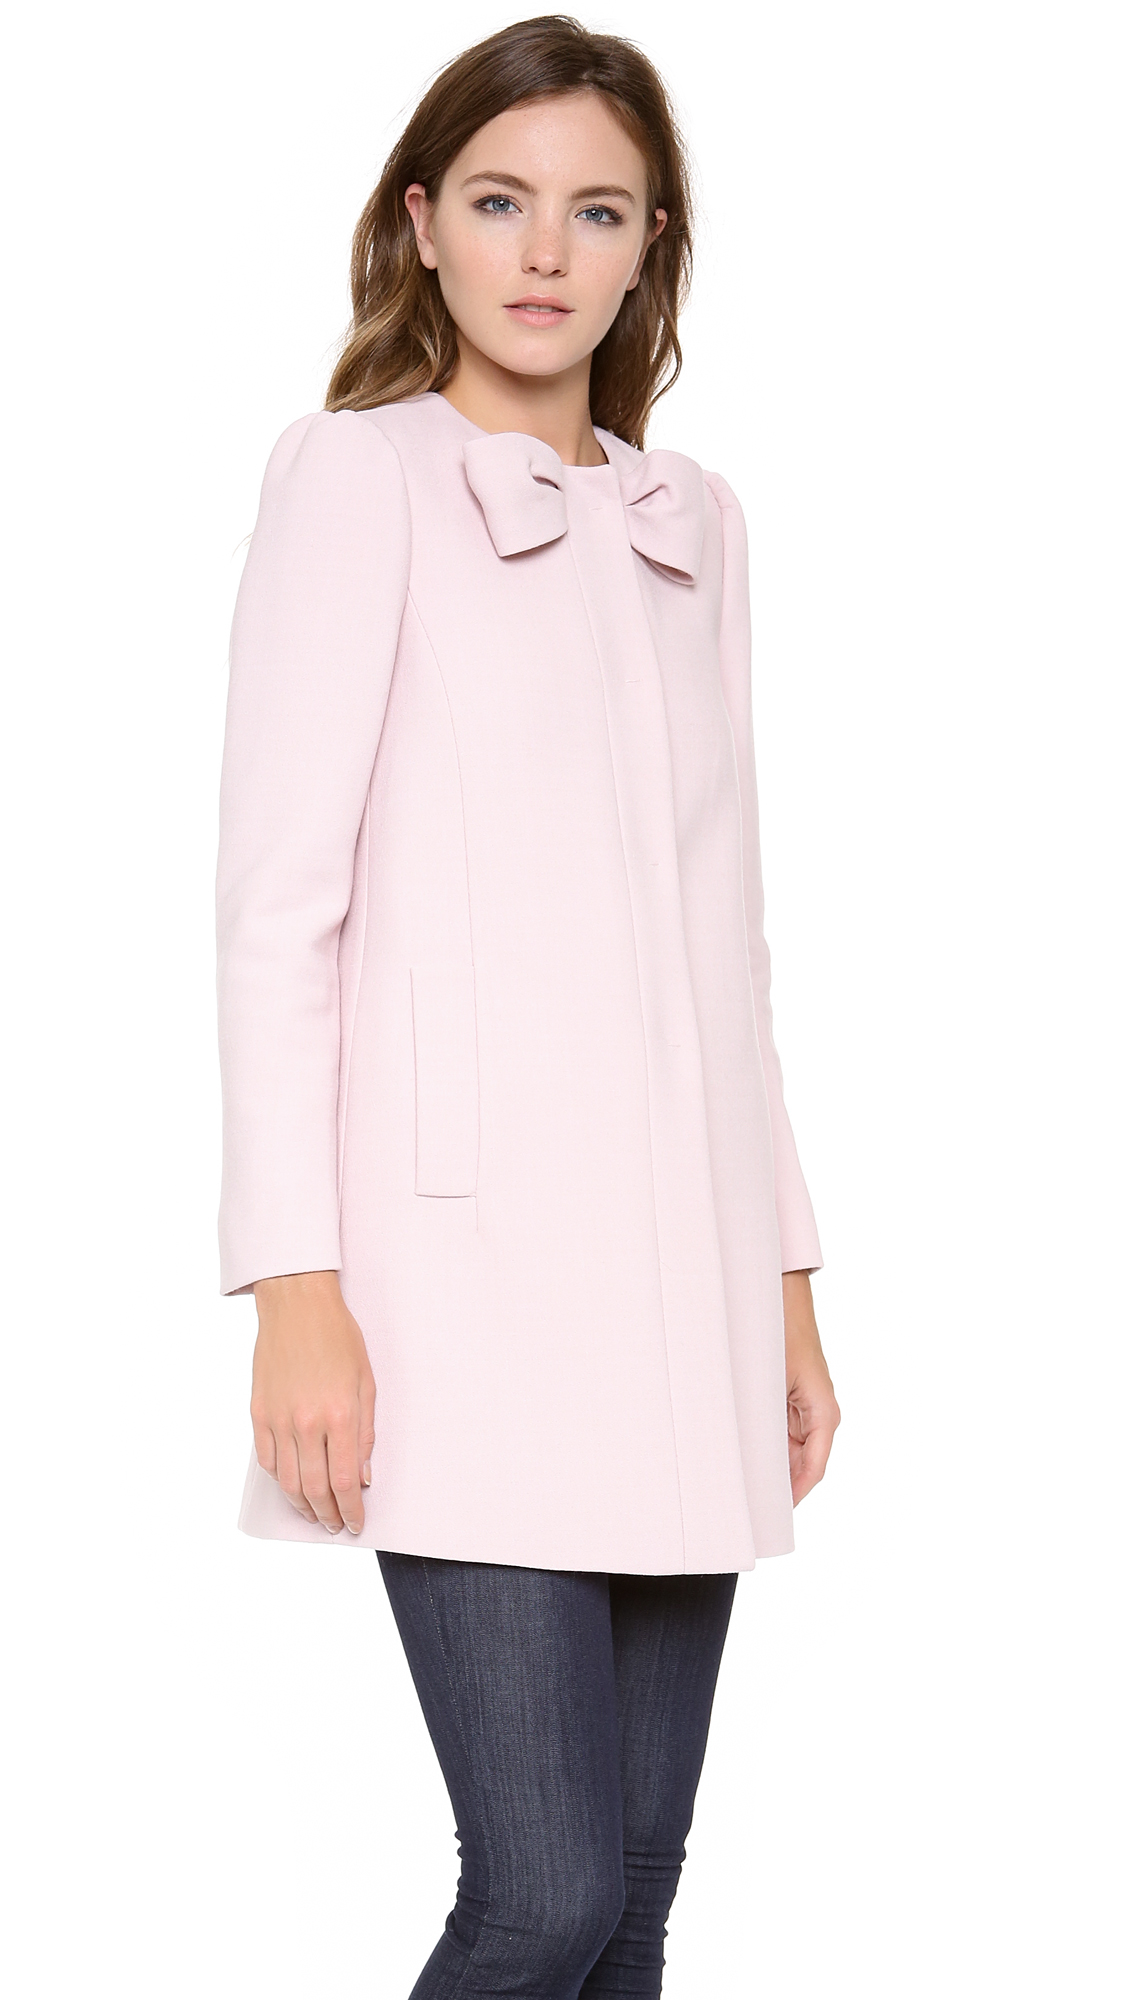 Red Valentino Spring 2016: Red Valentino Bow Neck Coat In Pink